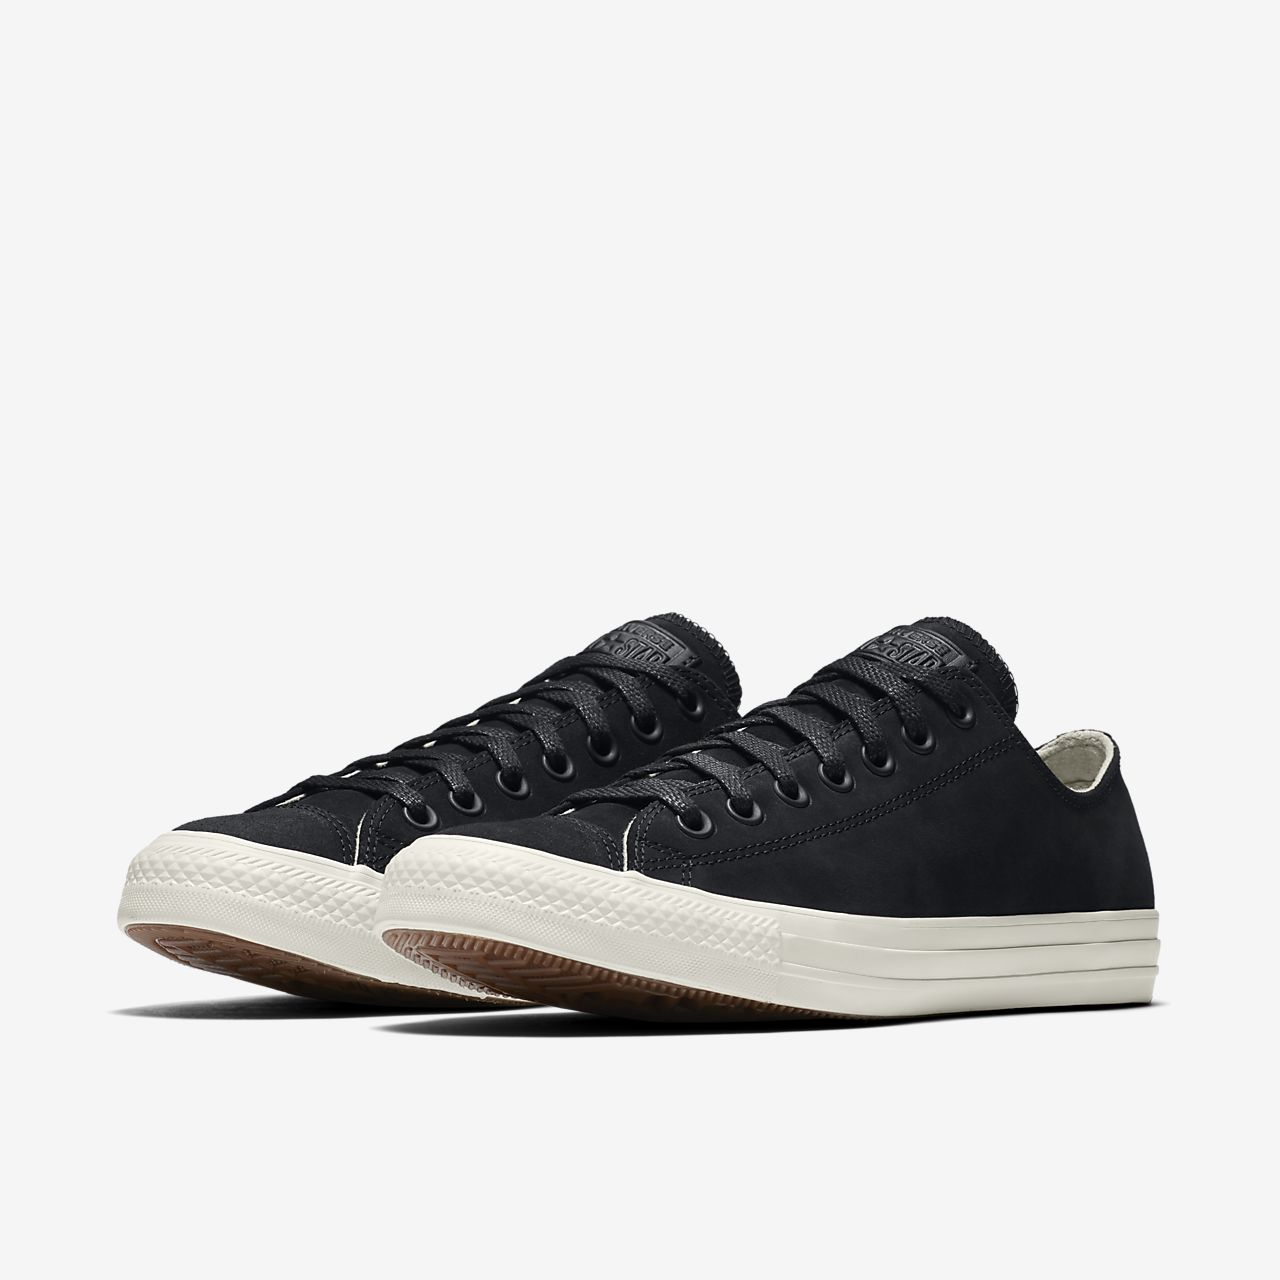 ... Converse Chuck Taylor All Star Nubuck Low Top Men's Shoe